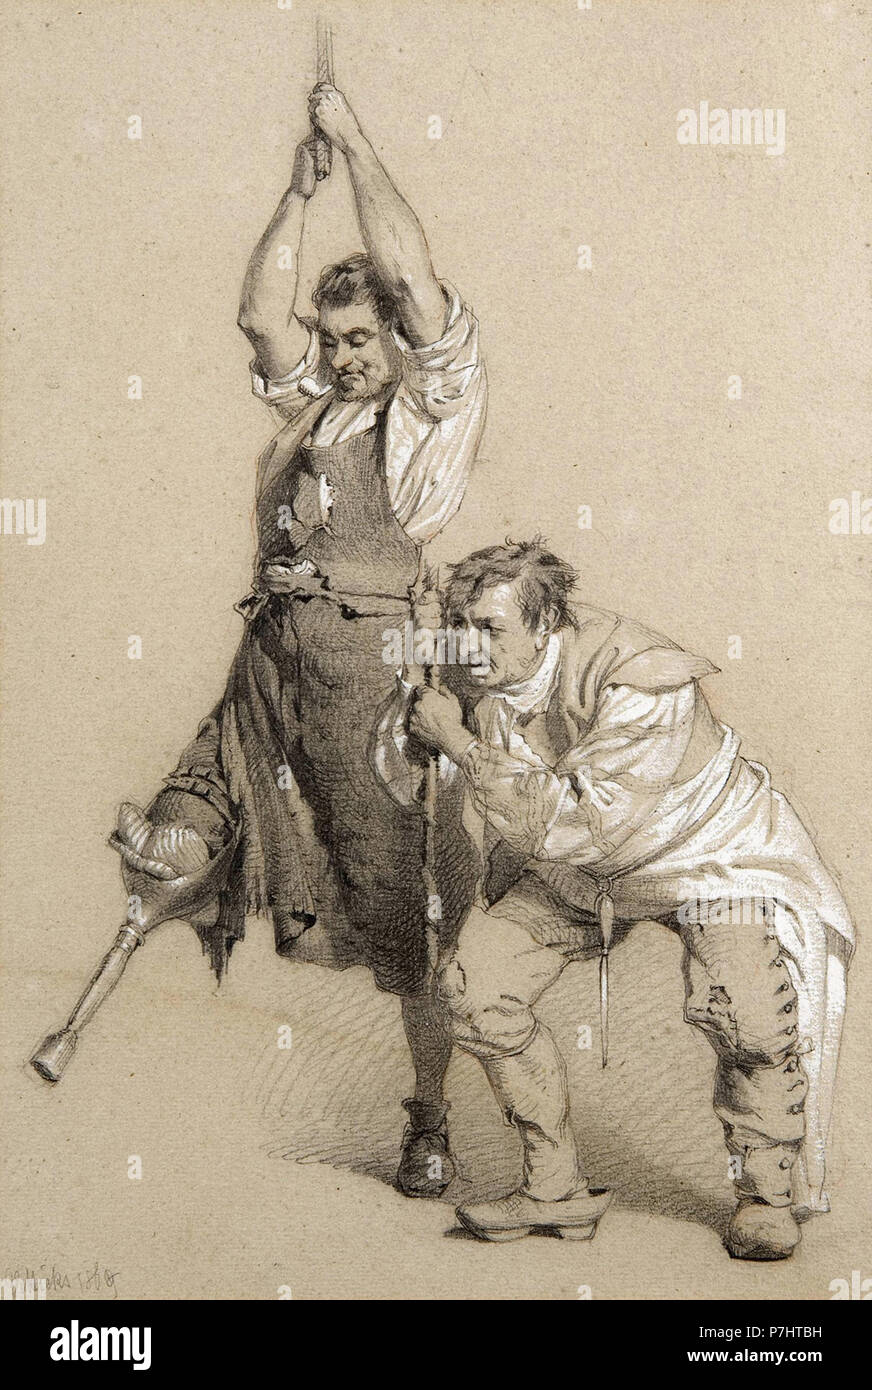 Hicks  George Elgar - Two Men  One with a Wooden Leg  Engaging in Physical Labour - Stock Image